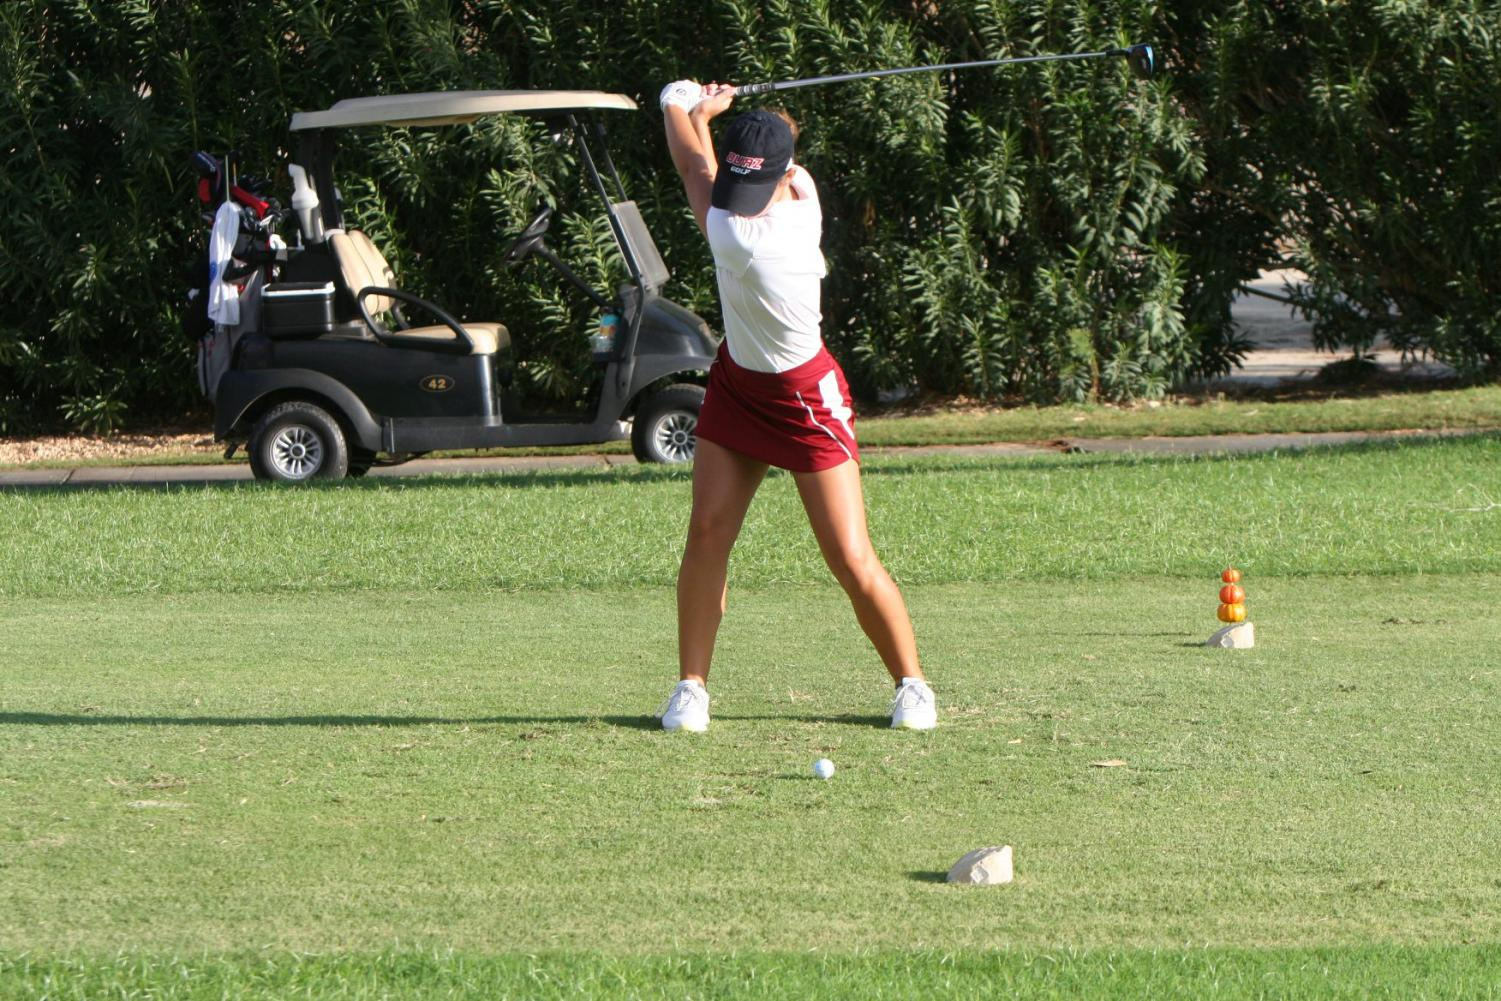 Biola golfer swings at the ball during the Sonoma State Invite.